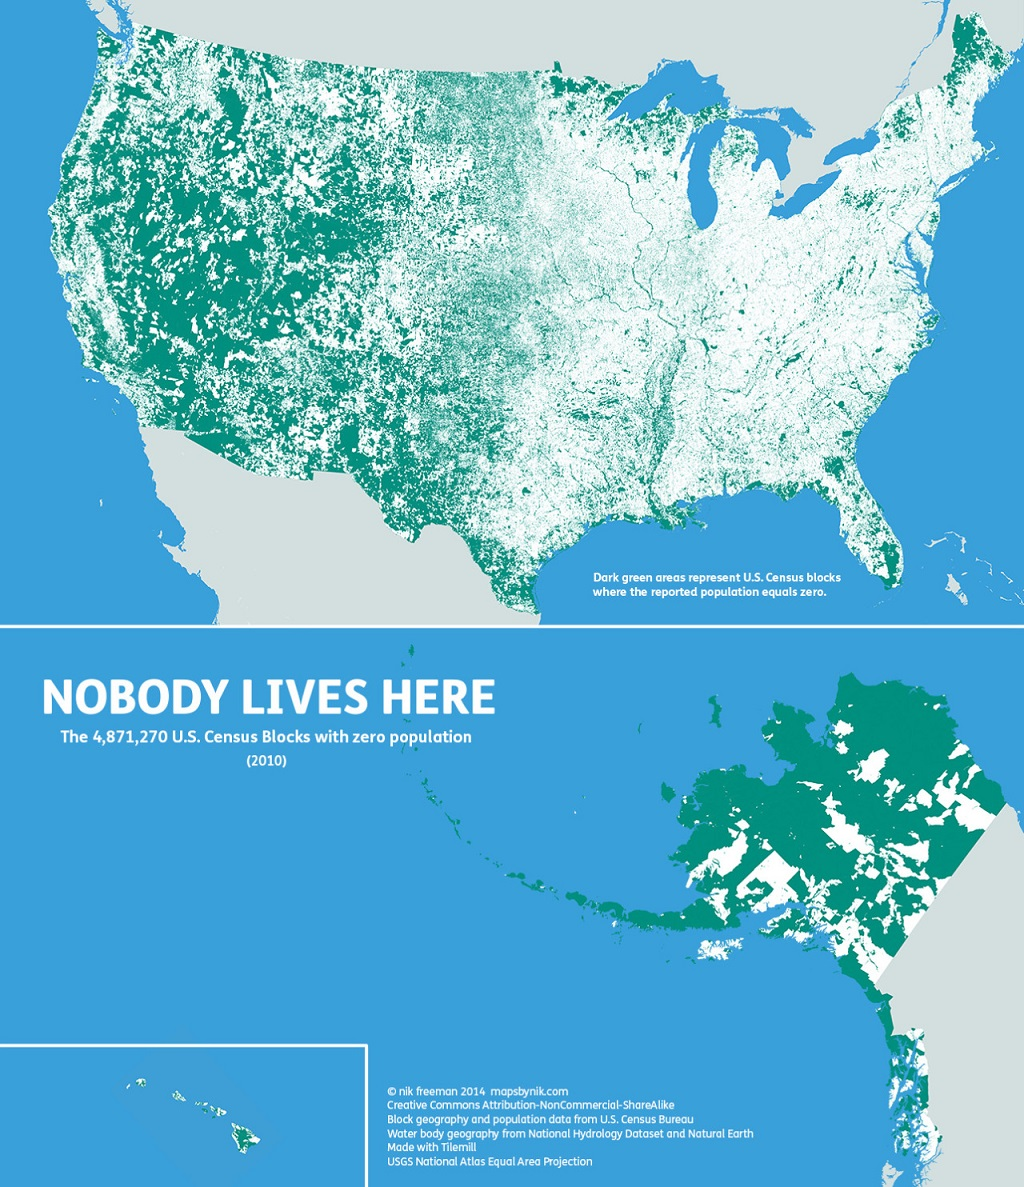 where-people-dont-live-in-the-US